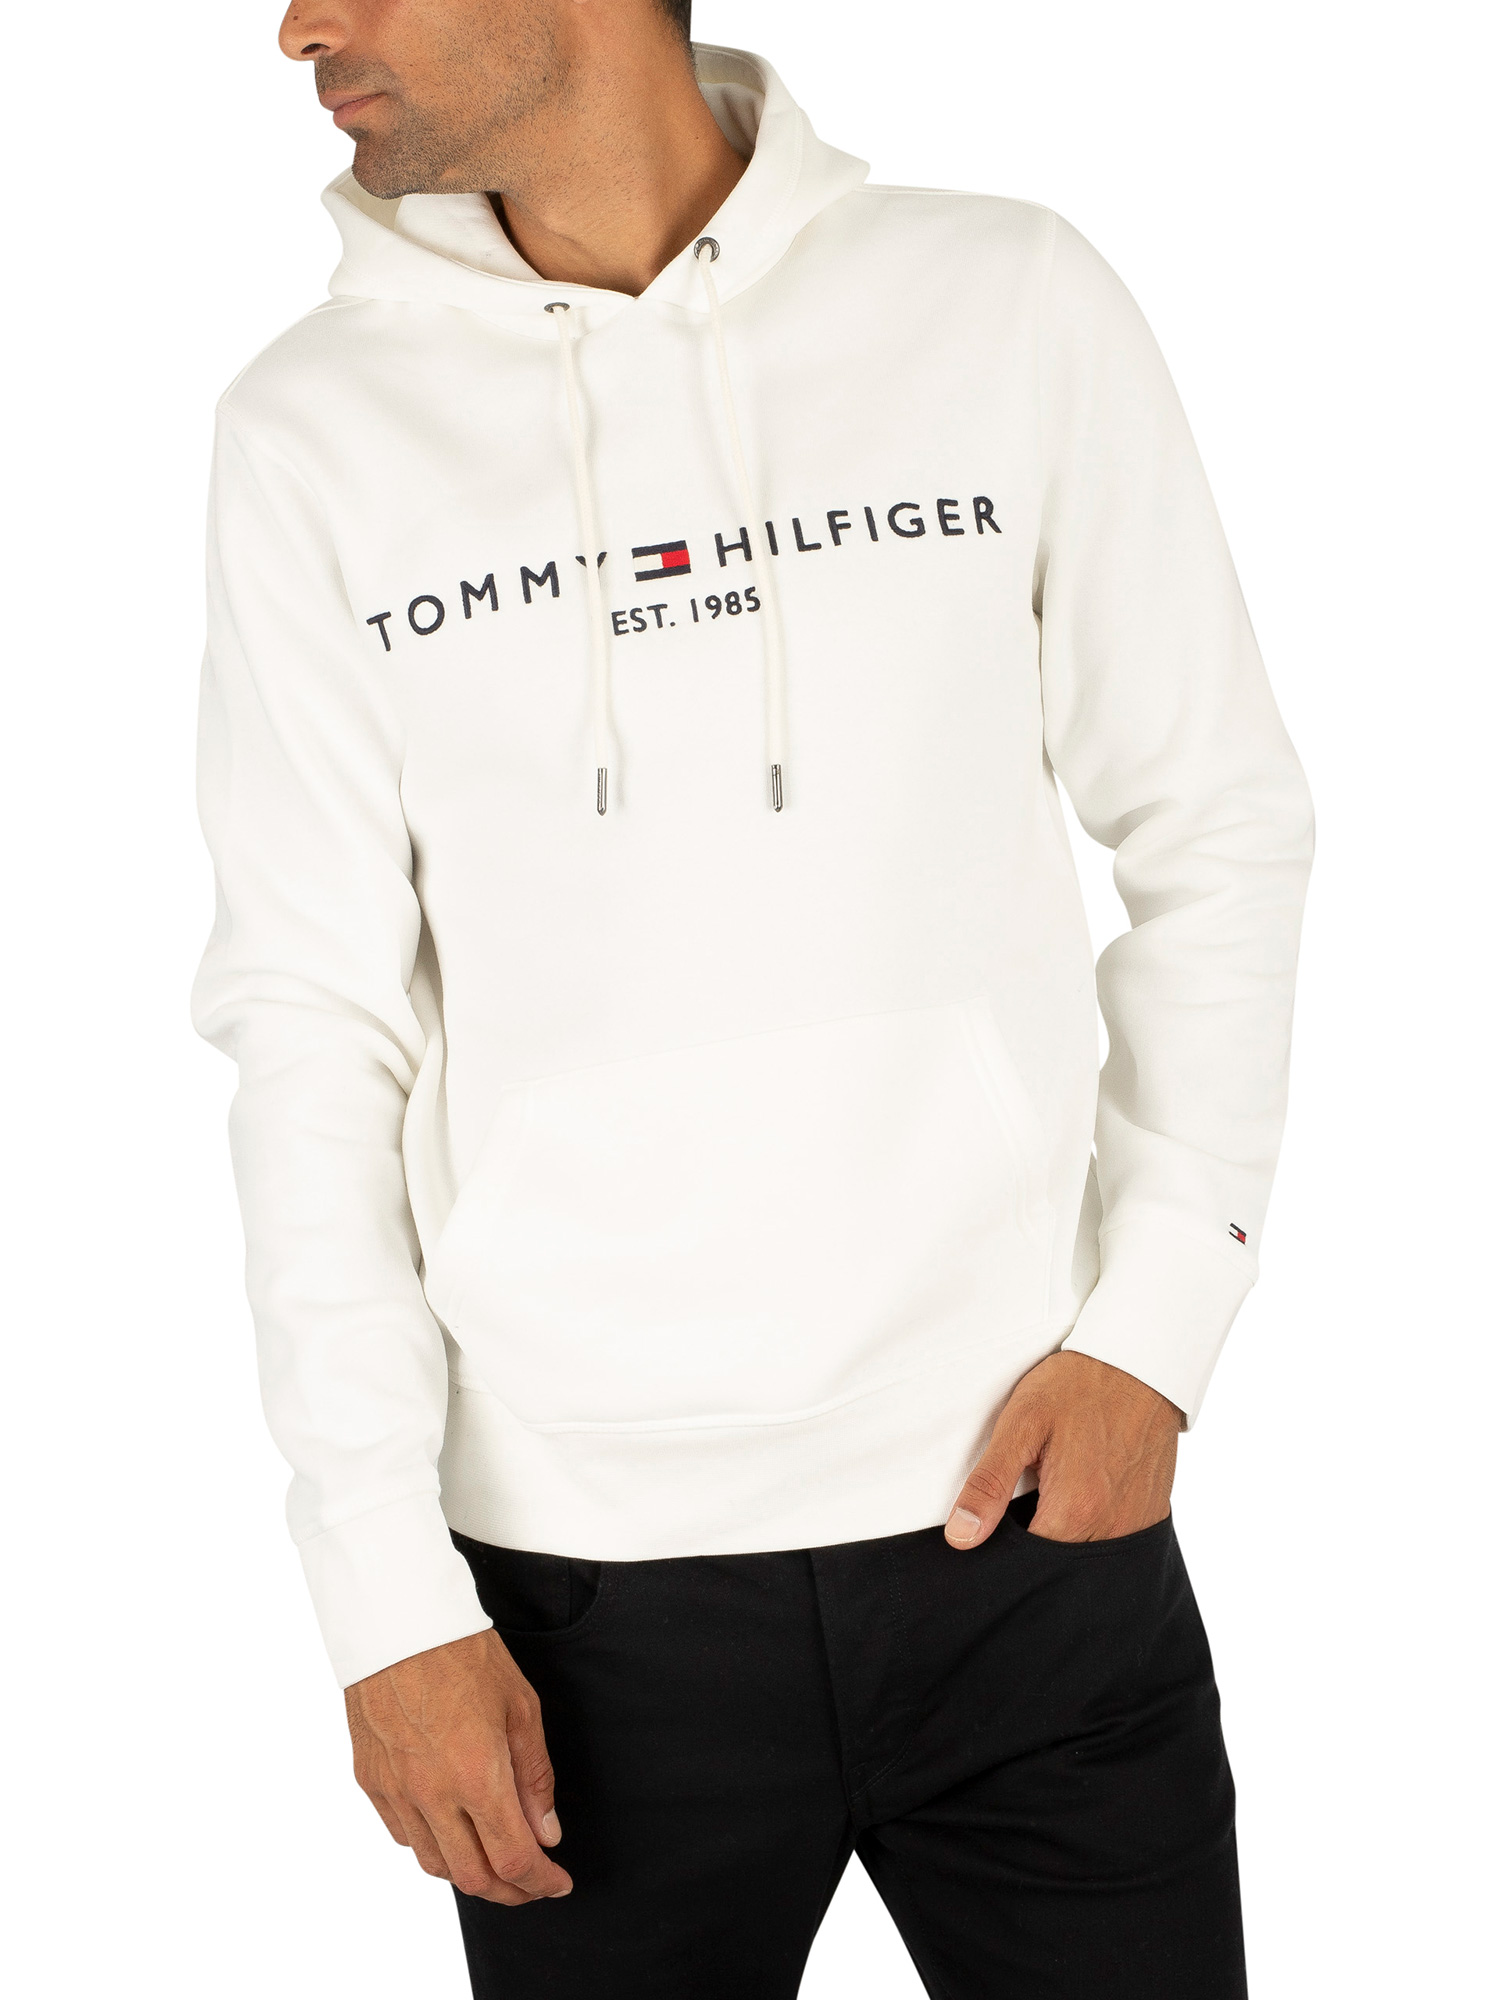 Pullover tommy hilfiger | Etsy